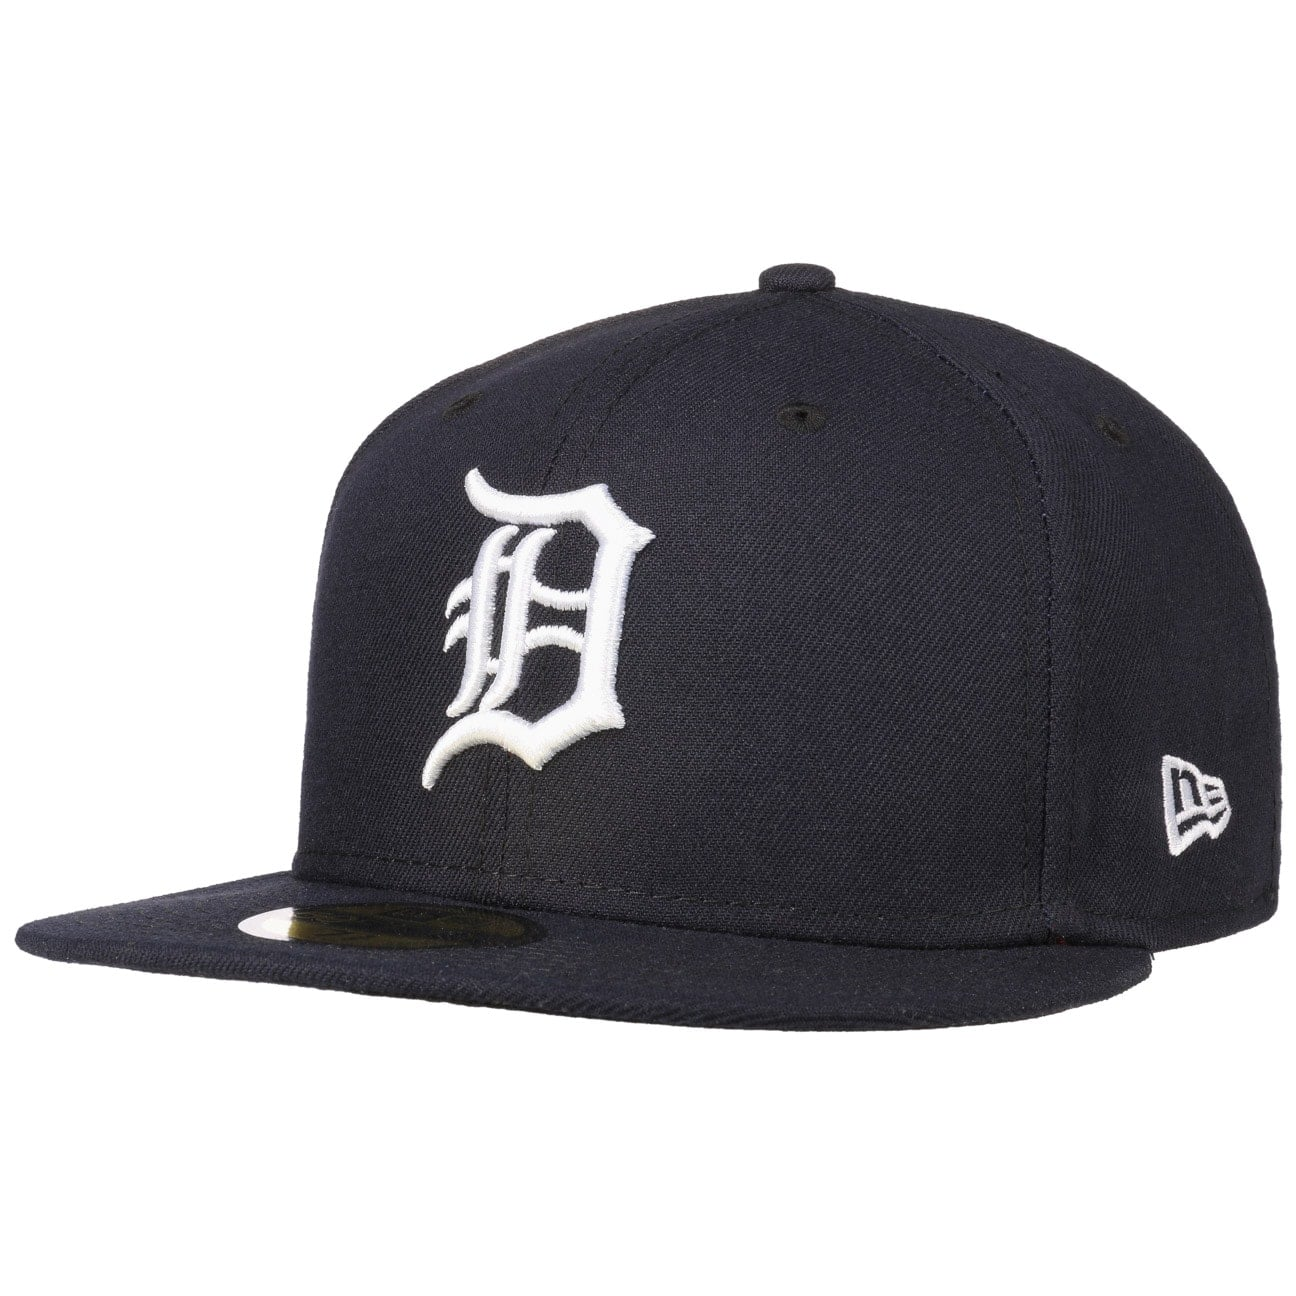 59fifty-ac-perf-tigers-by-new-era